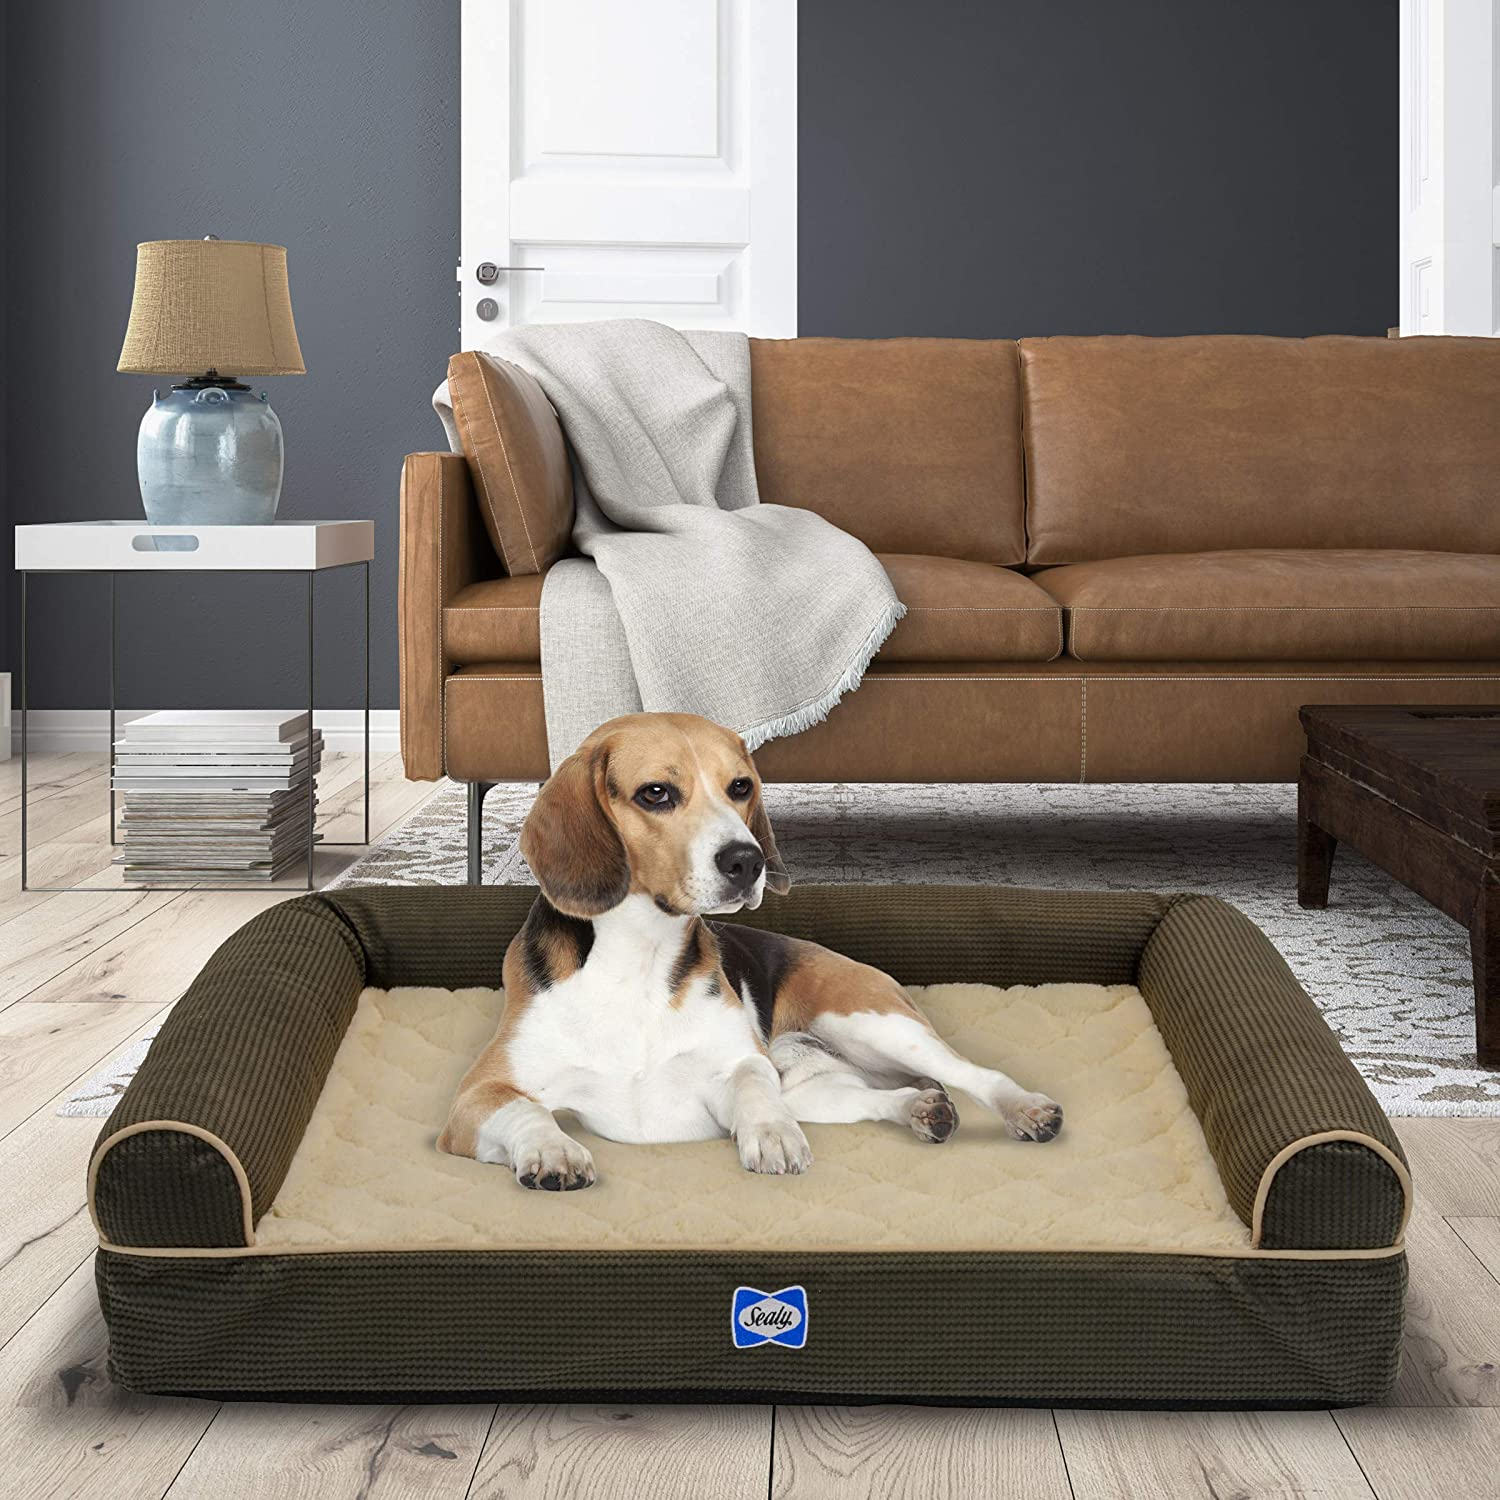 """Sealy Dog Bed Sealy Ultra Plush Sofa-Style Bolster Dog Bed Brown, Small - Orthopedic Foam Pet Bed with Machine Washable Plush Cover, Small (20"""" x 25"""") (SealyOCB2520B) : Pet Supplies"""